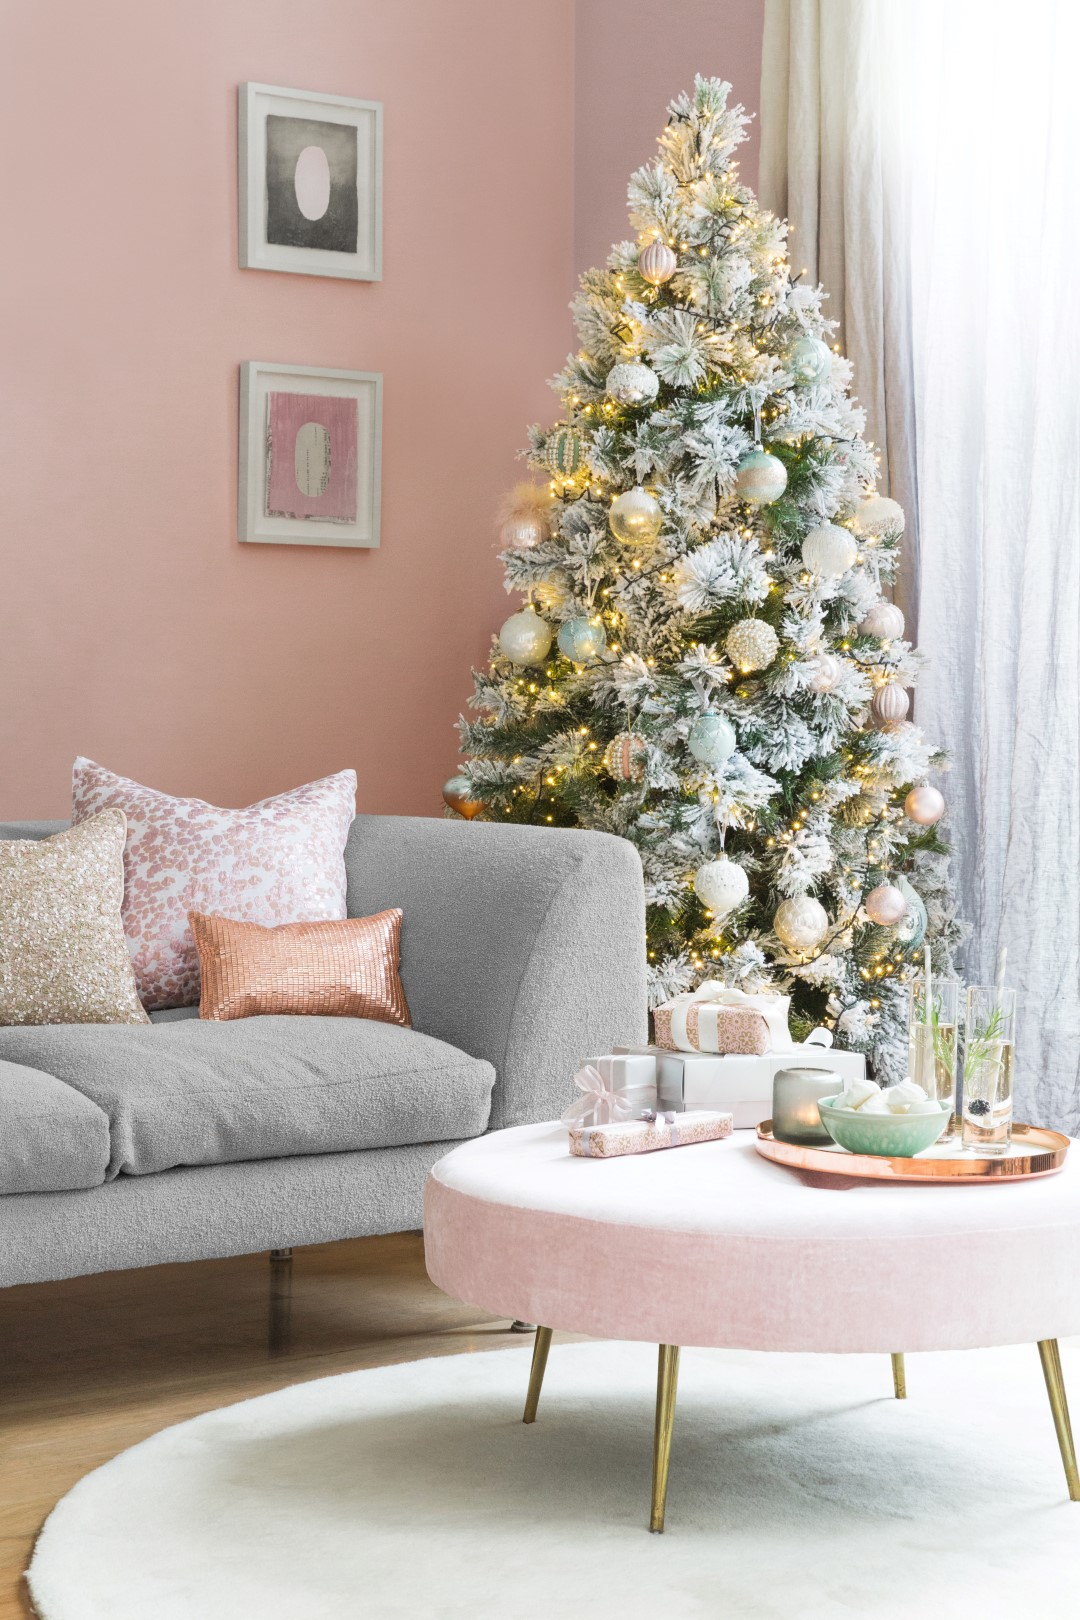 decorating your home for christmas. how to decorate your first home for christmas decorating